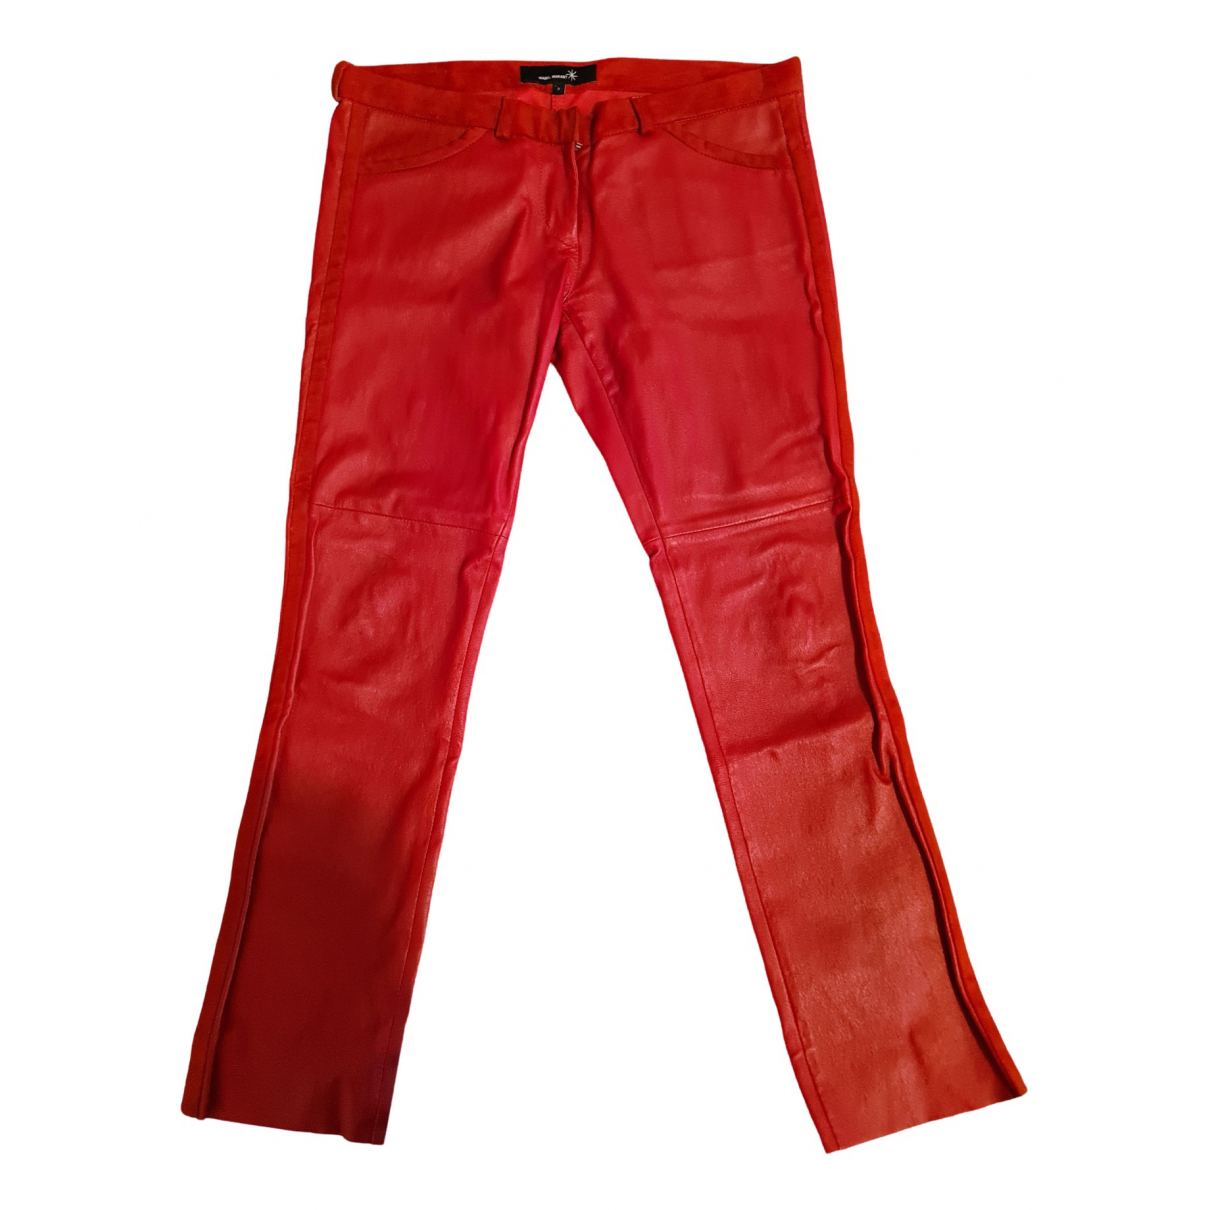 Isabel Marant \N Red Leather Trousers for Women 36 FR